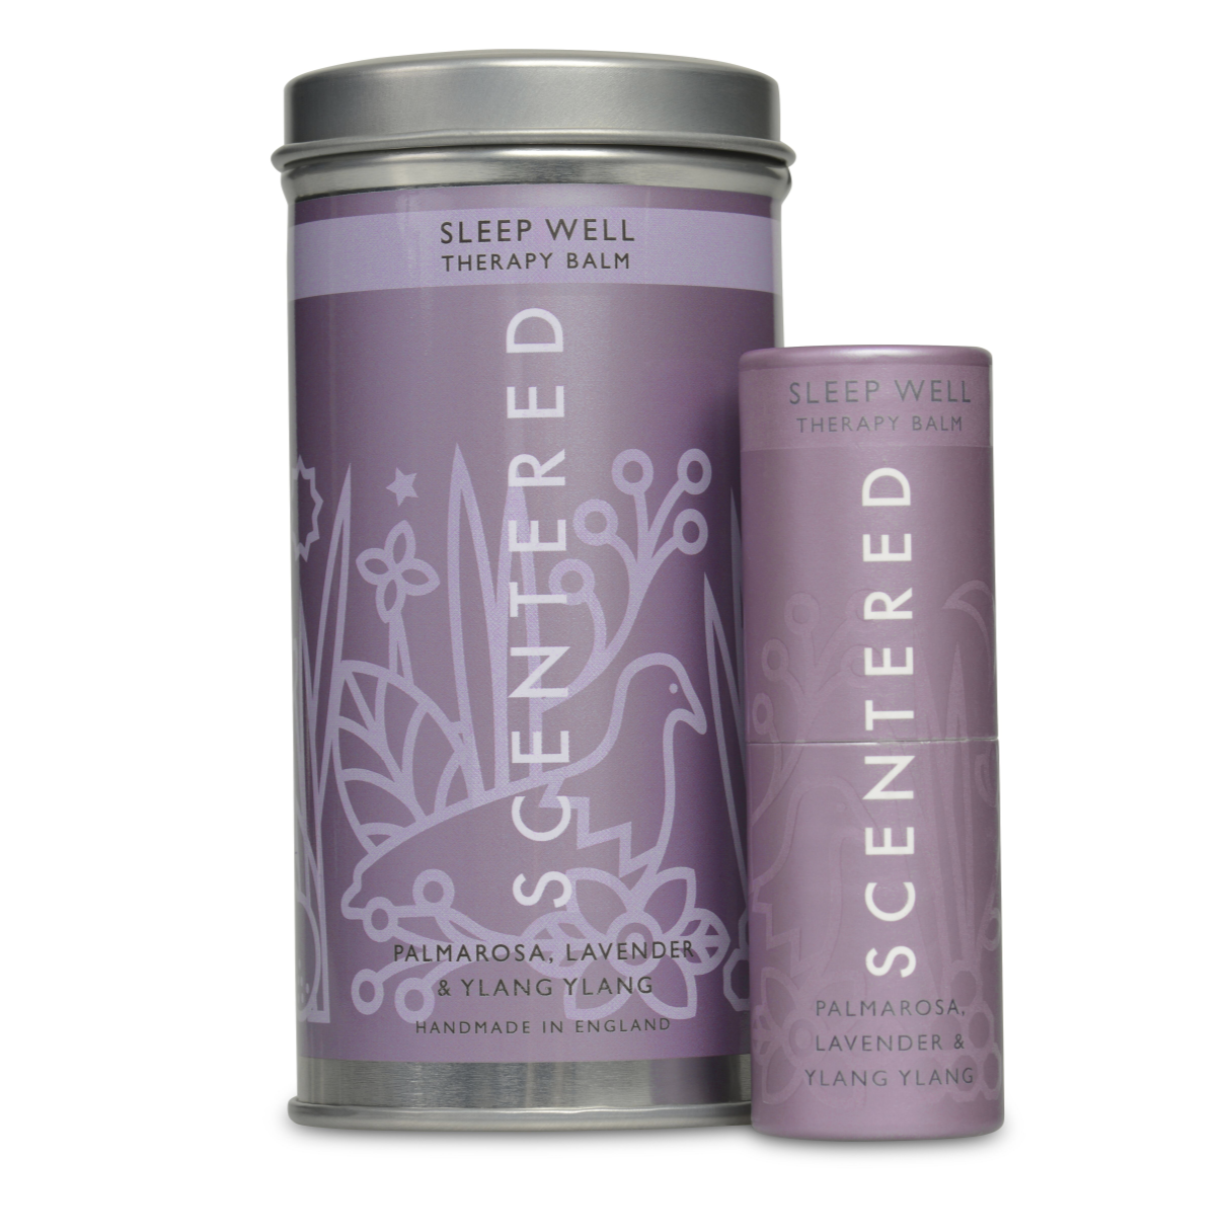 Sleep Well Therapy Balm | Scentered